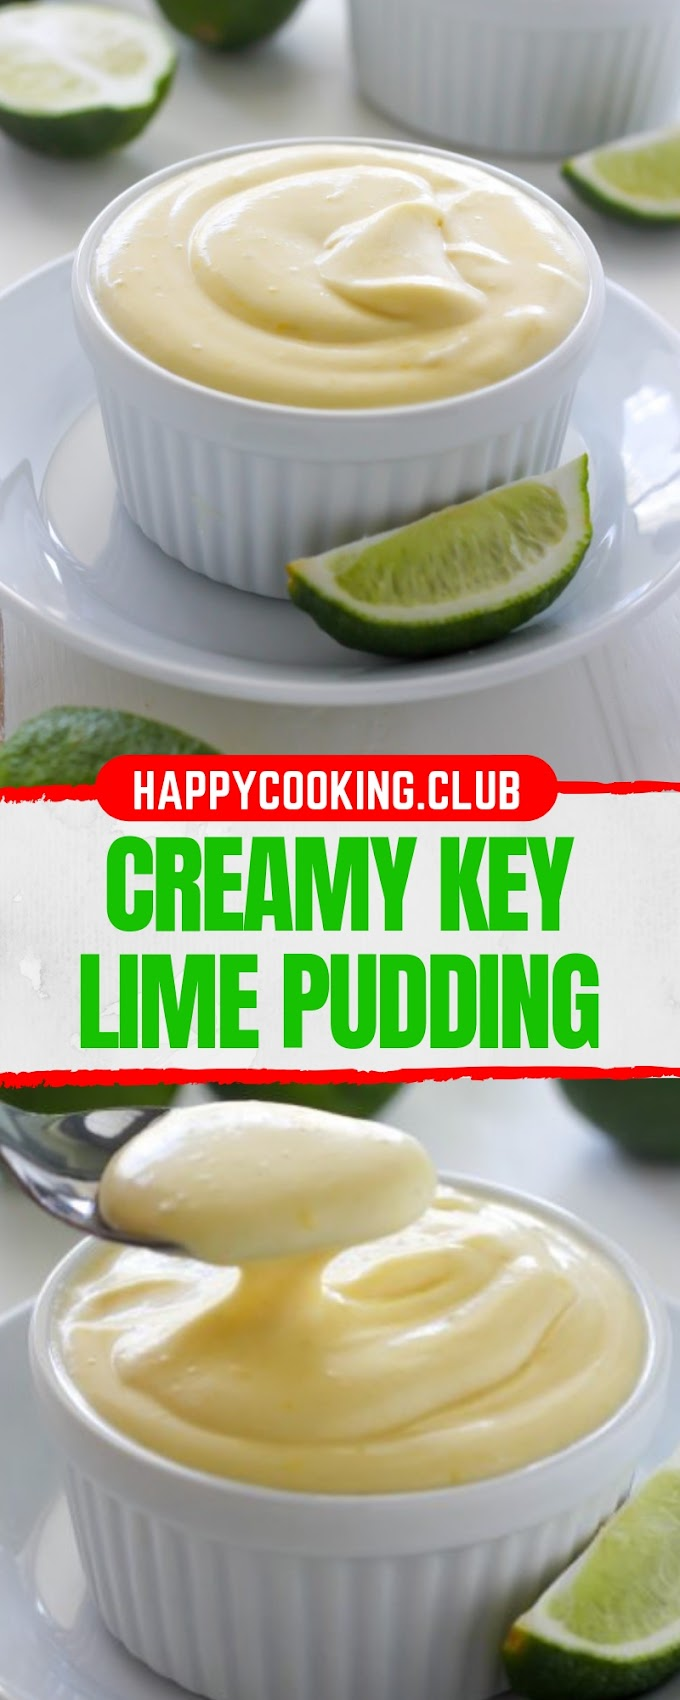 CREAMY KEY LIME PUDDING